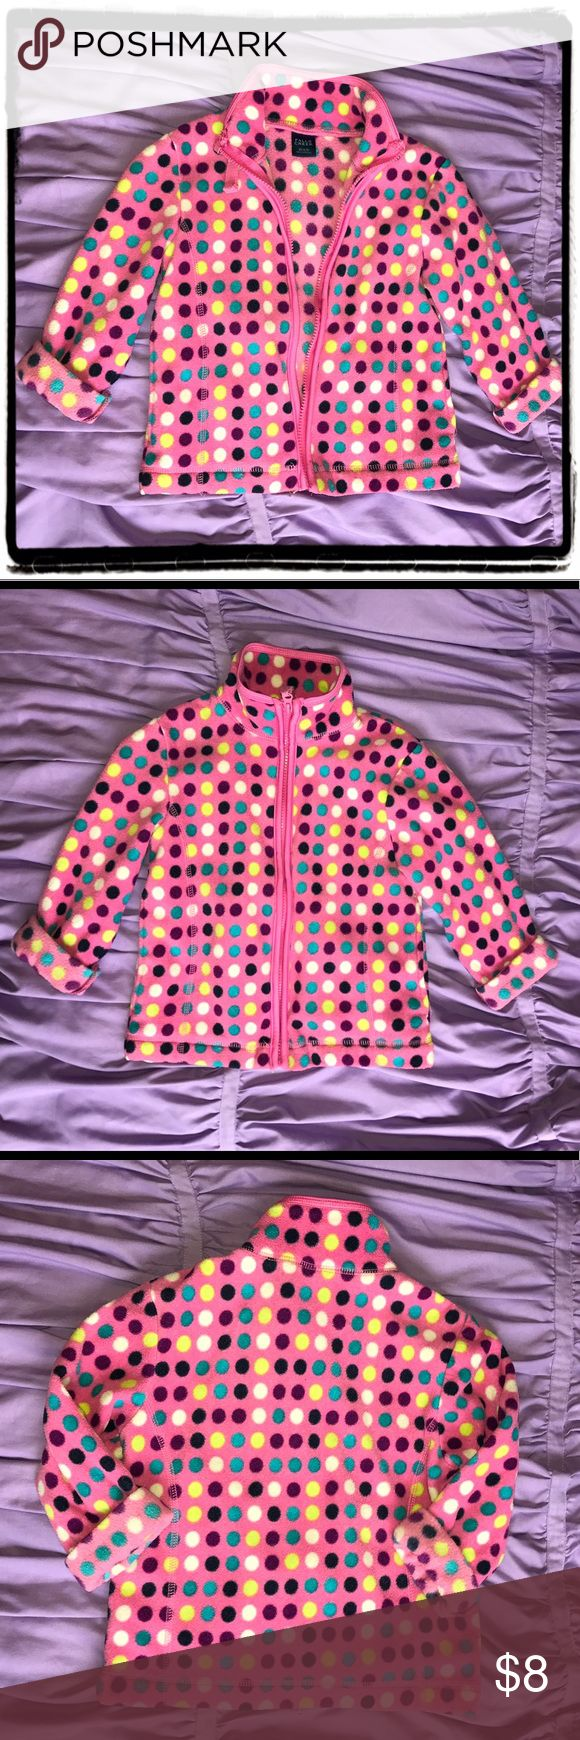 Pink Polka Dot Fleece Jacket Pink fleece jacket with multi colored polka dots by Falls Creek. Perfect for a cool morning! Good condition. Zipper perfect. Girls XS (4-5) Falls Creek Jackets & Coats